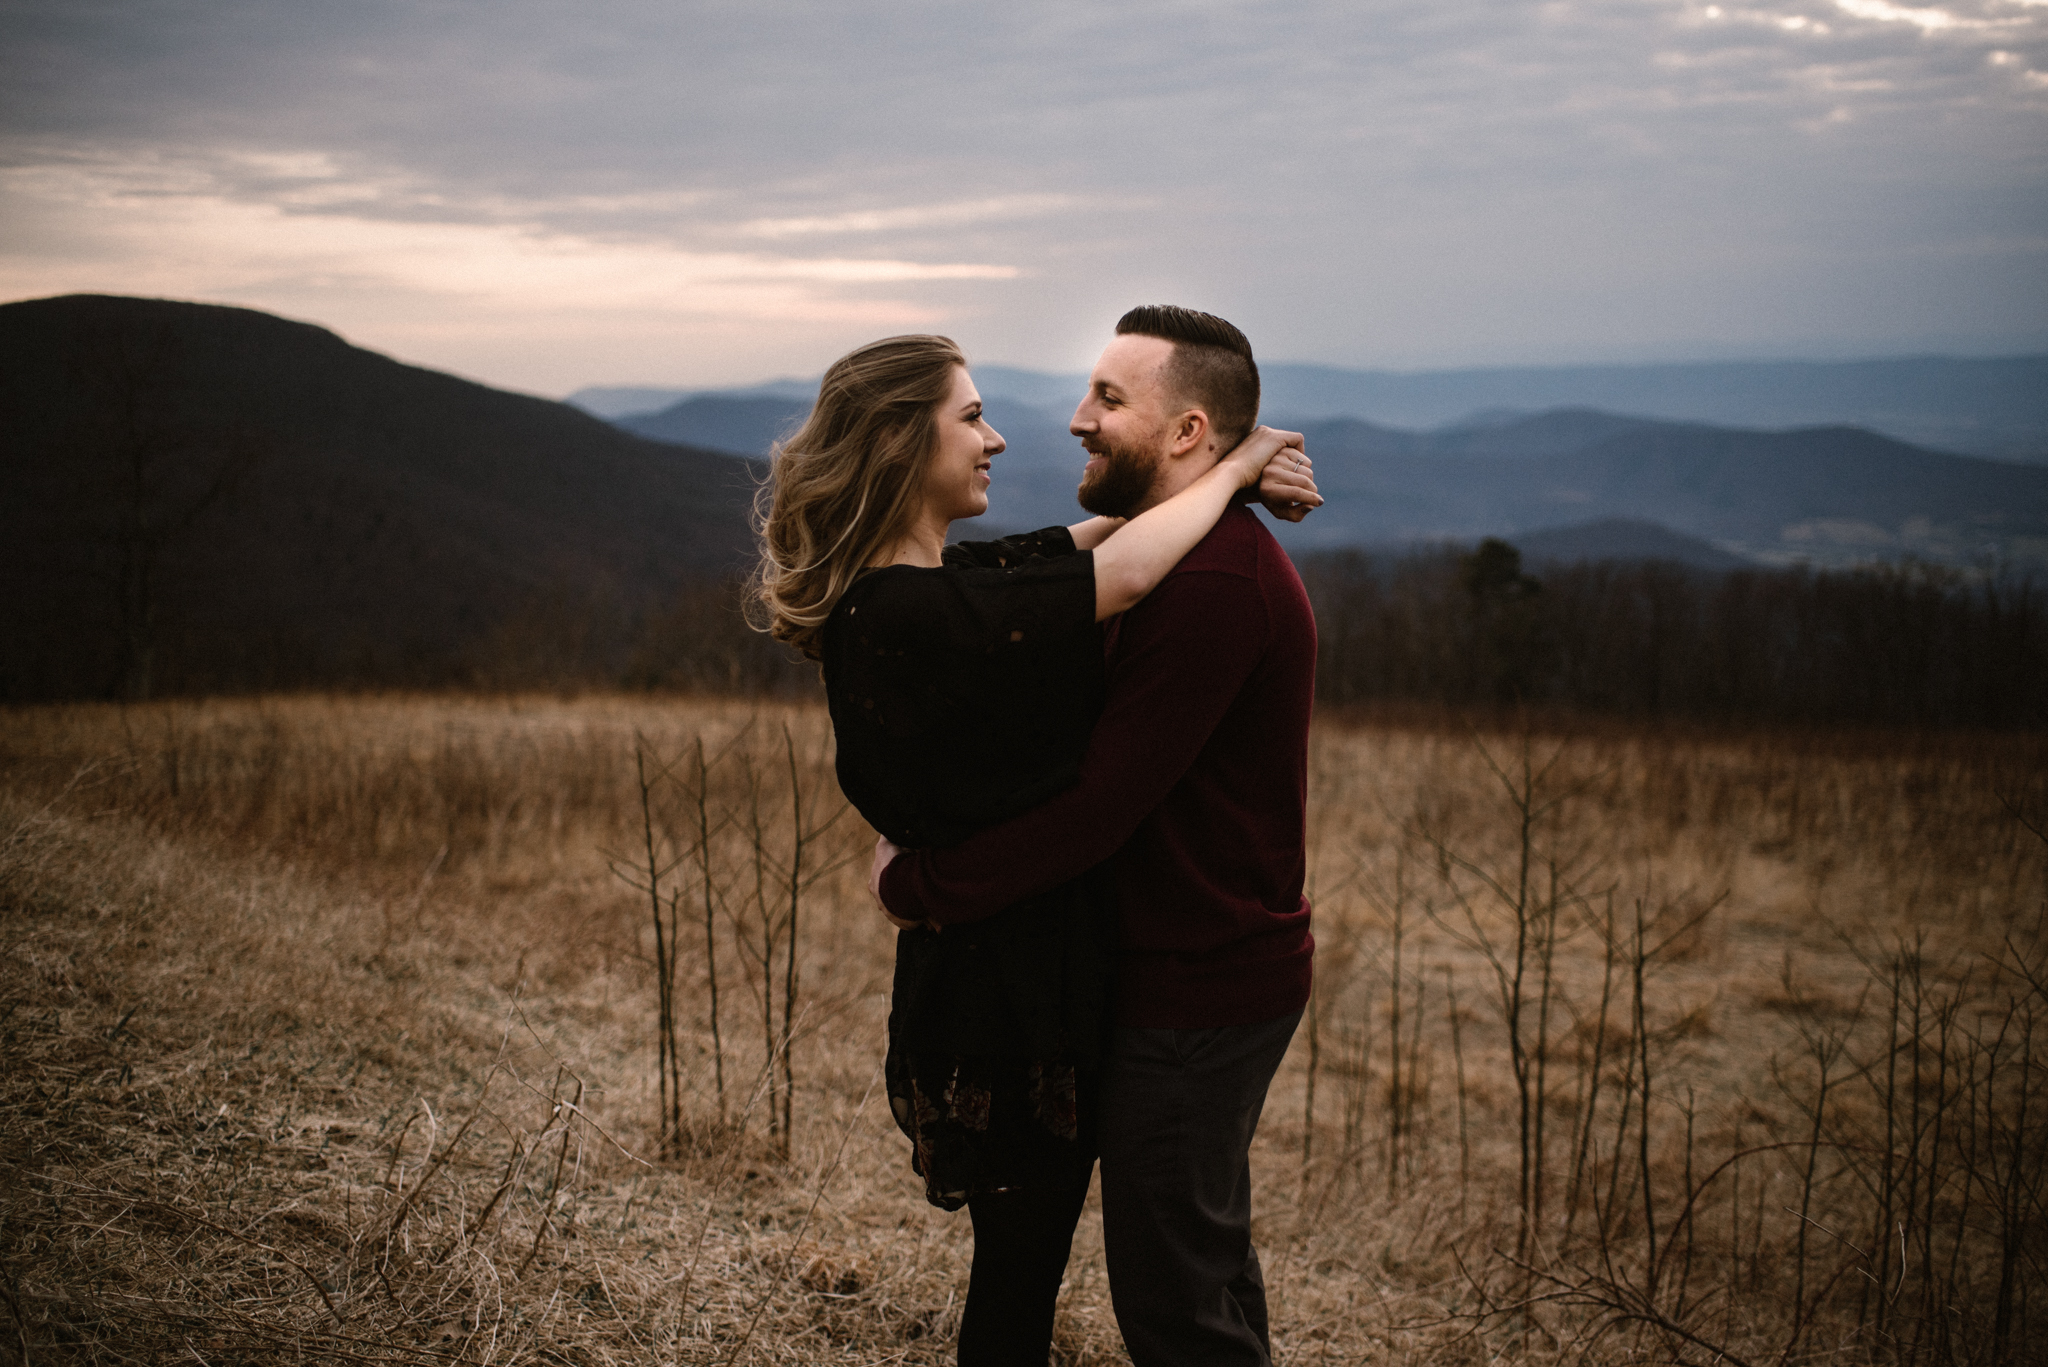 Nicole and Victor - Shenandoah National Park Engagement Photography - Blue Ridge Mountains Adventure Photography - White Sails Creative Photography_21.jpg